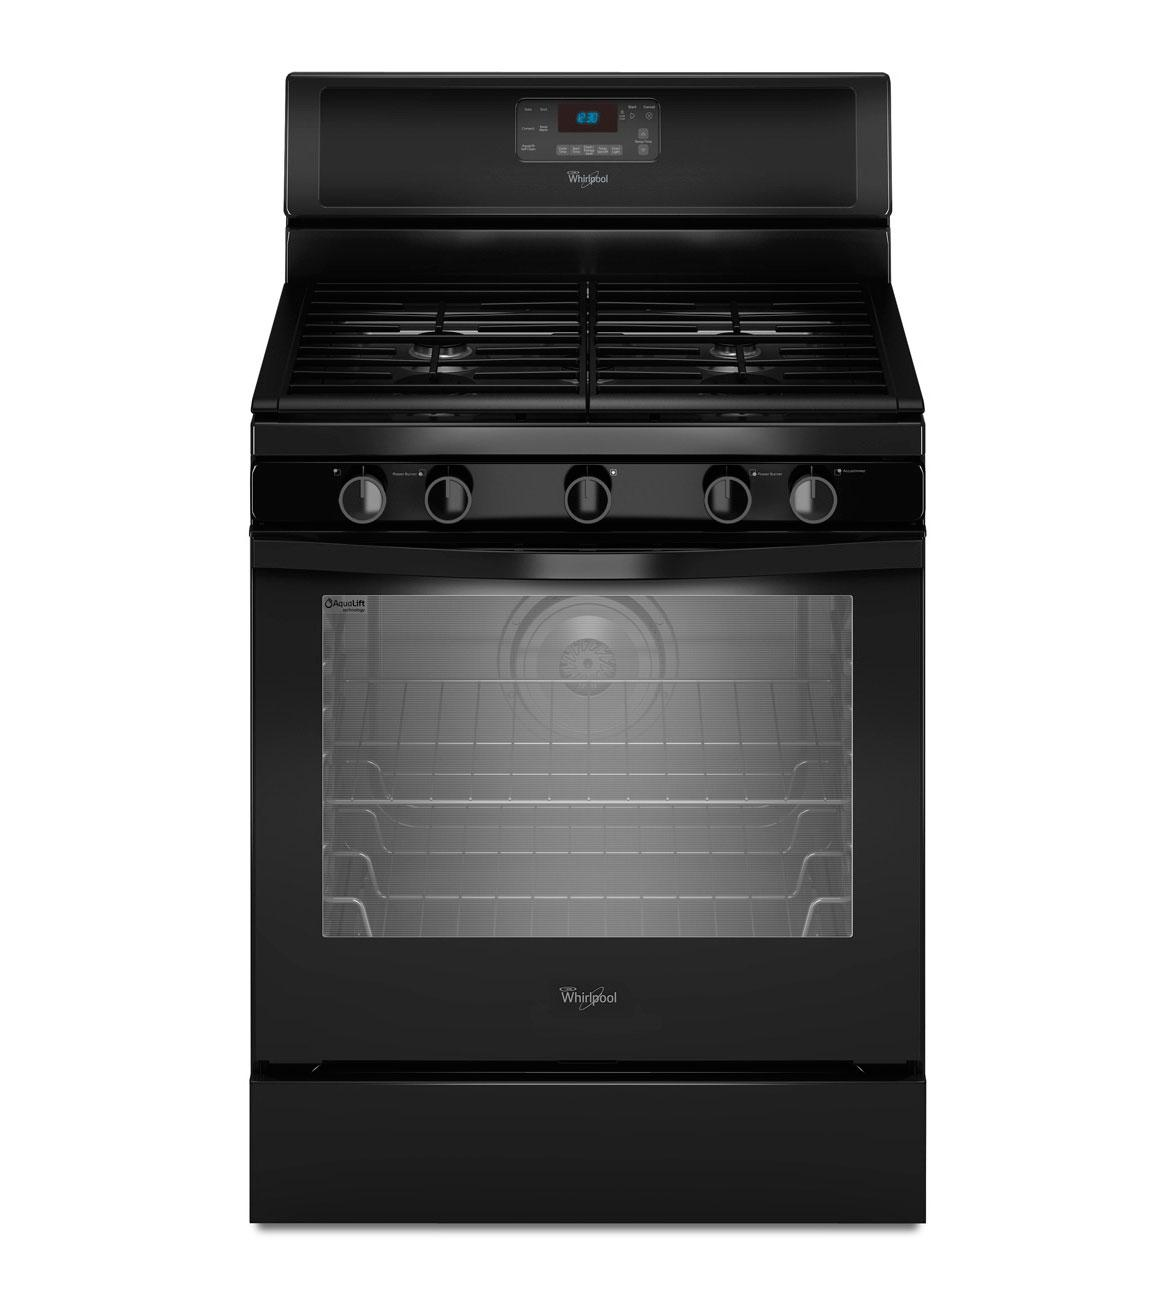 Wfg540h0as Whirlpool Wfg540h0as Gas Ranges Stainless Steel